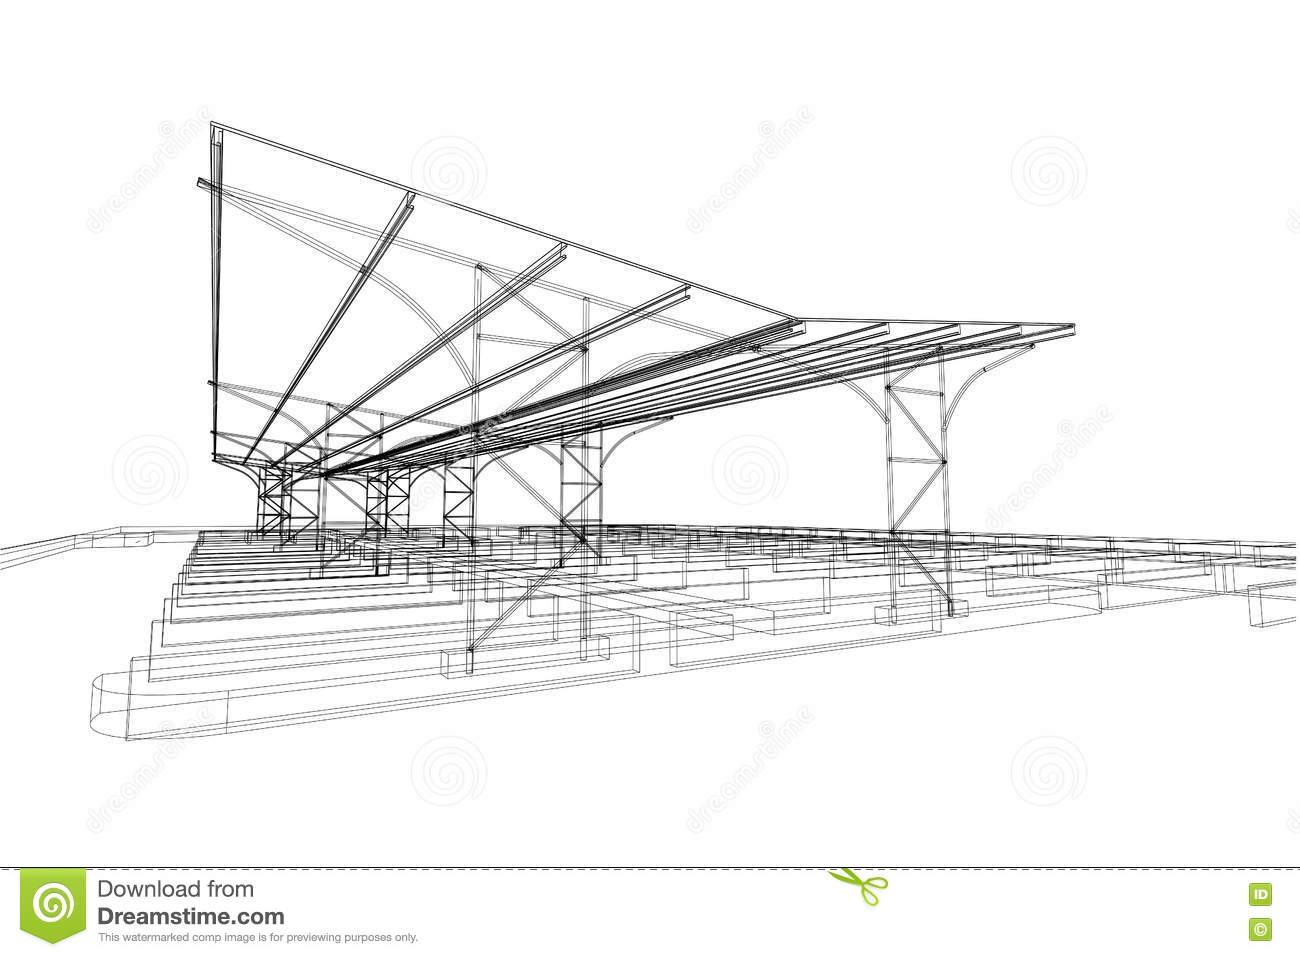 Outdoor parking structure abstract 3d illustration - Table de dessin architecte ...